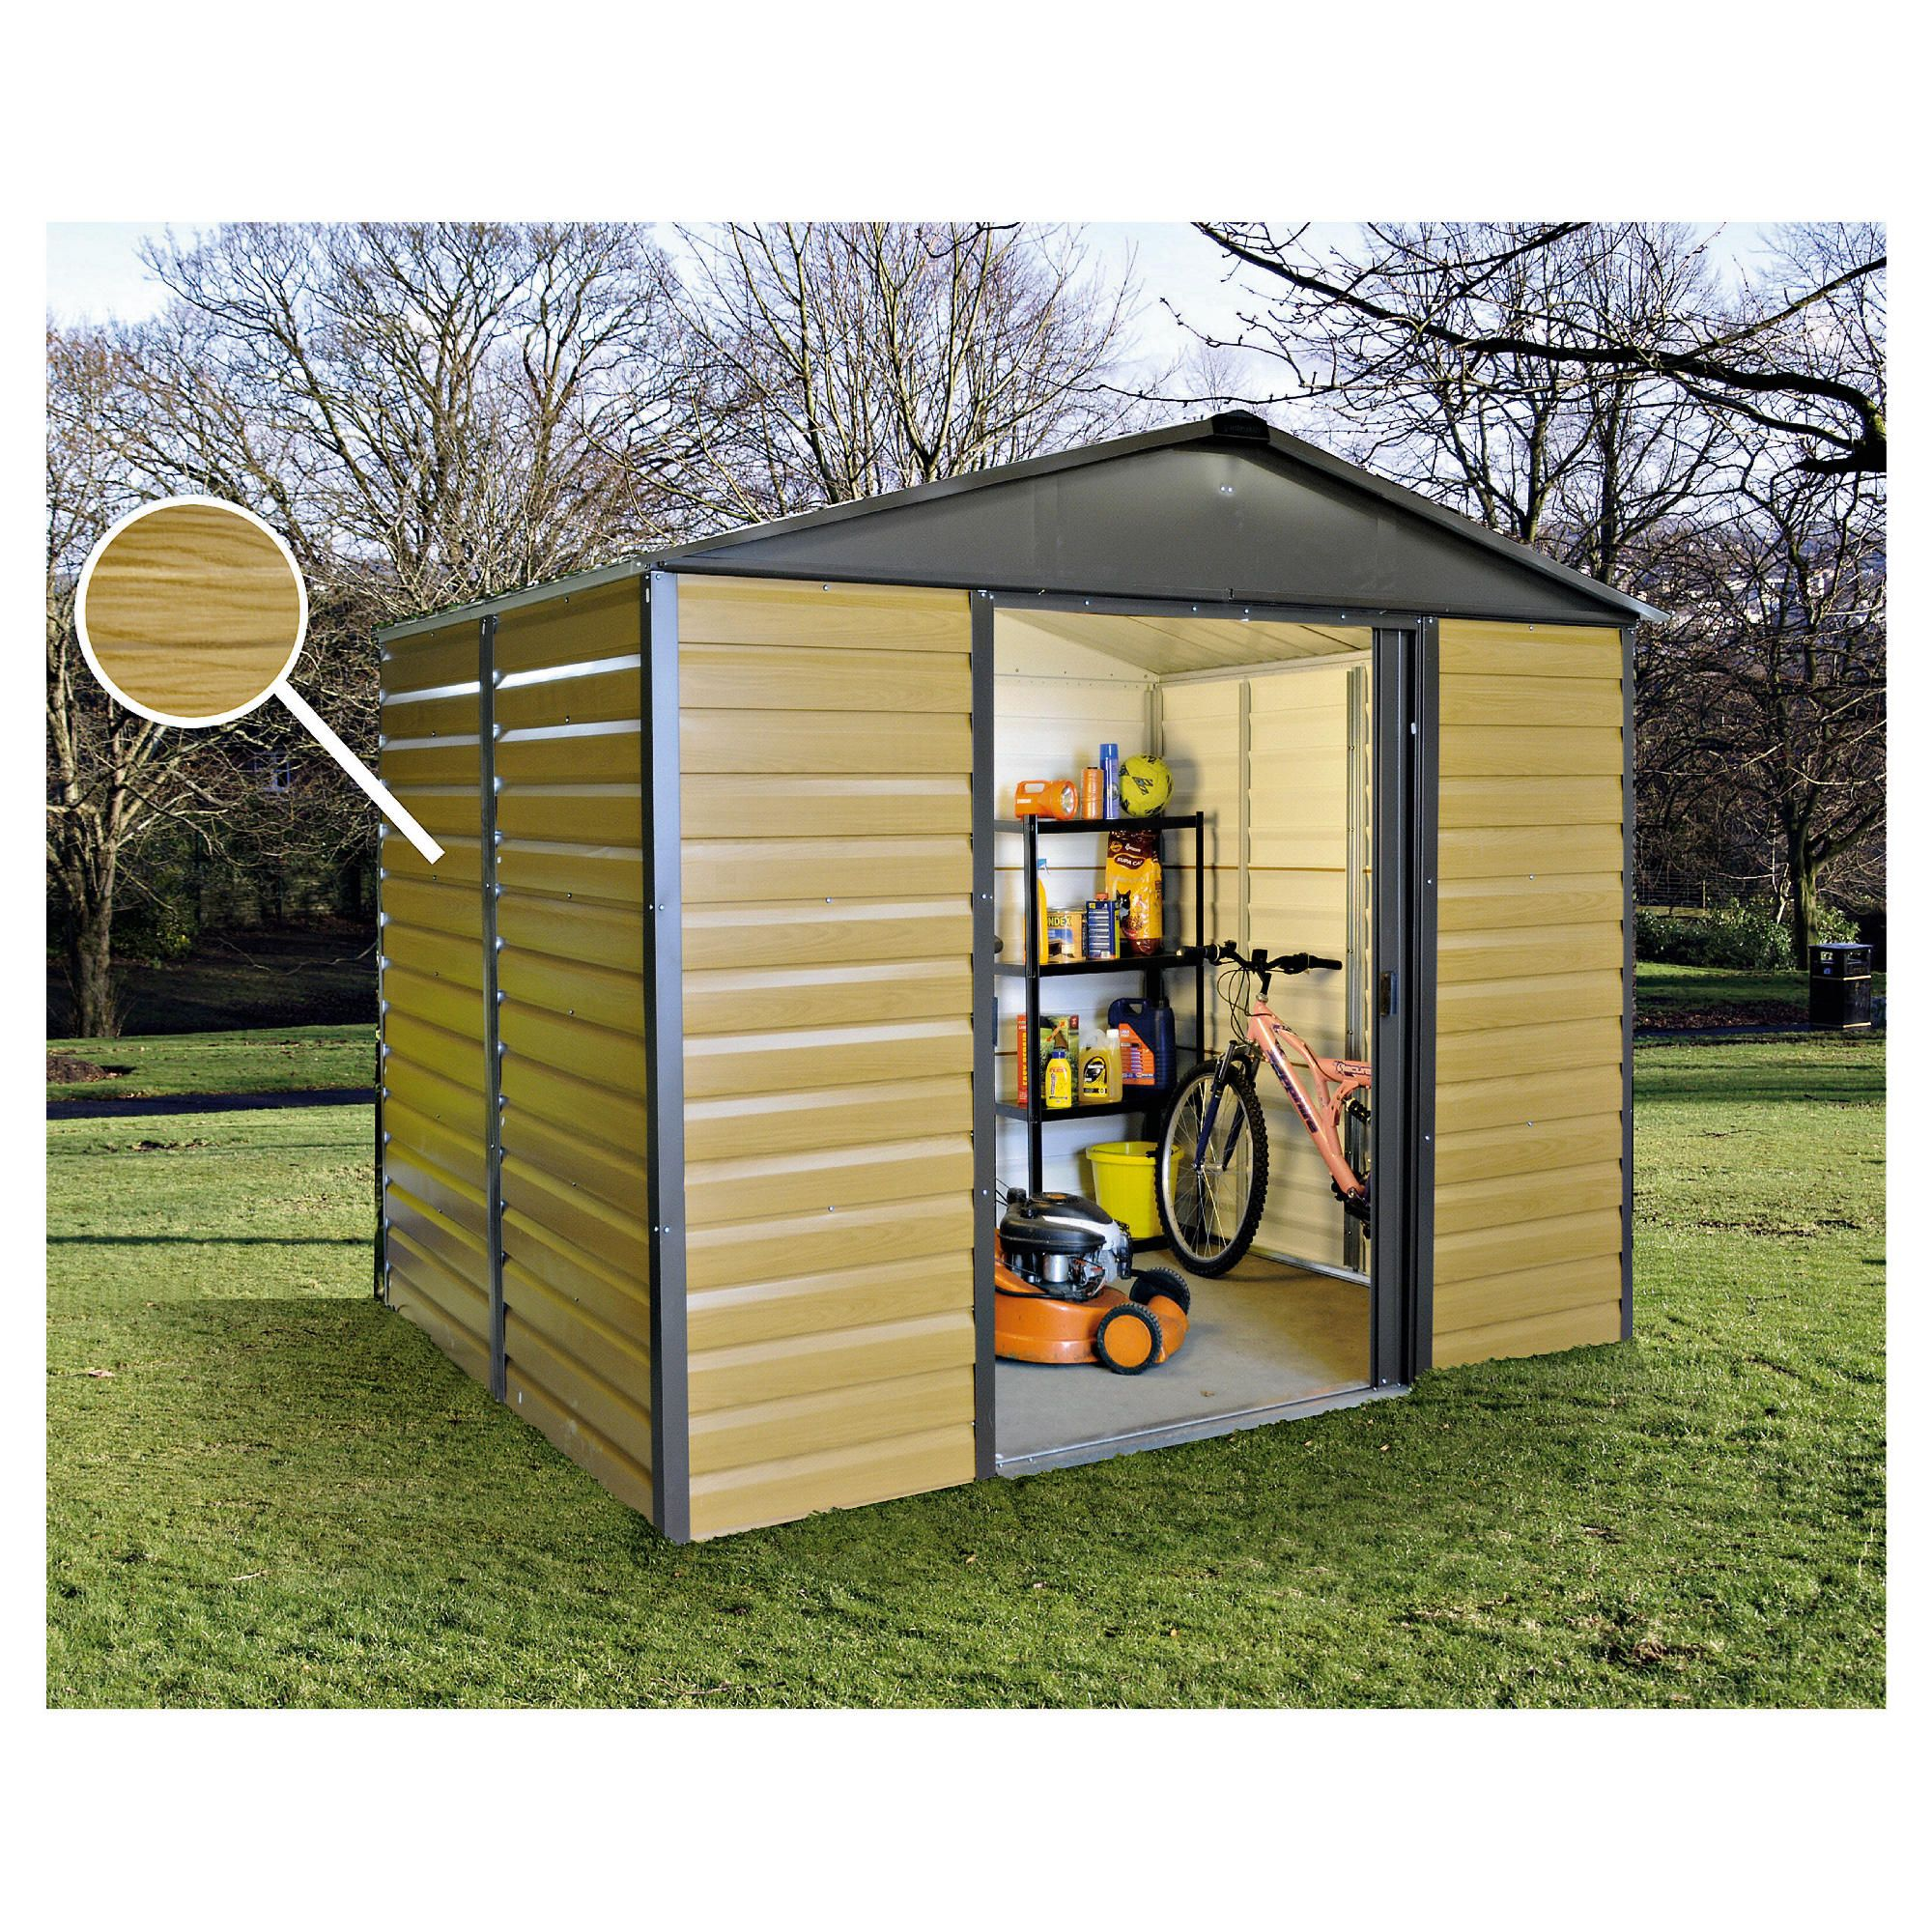 Keter 8x8 Apex Shed Instructions